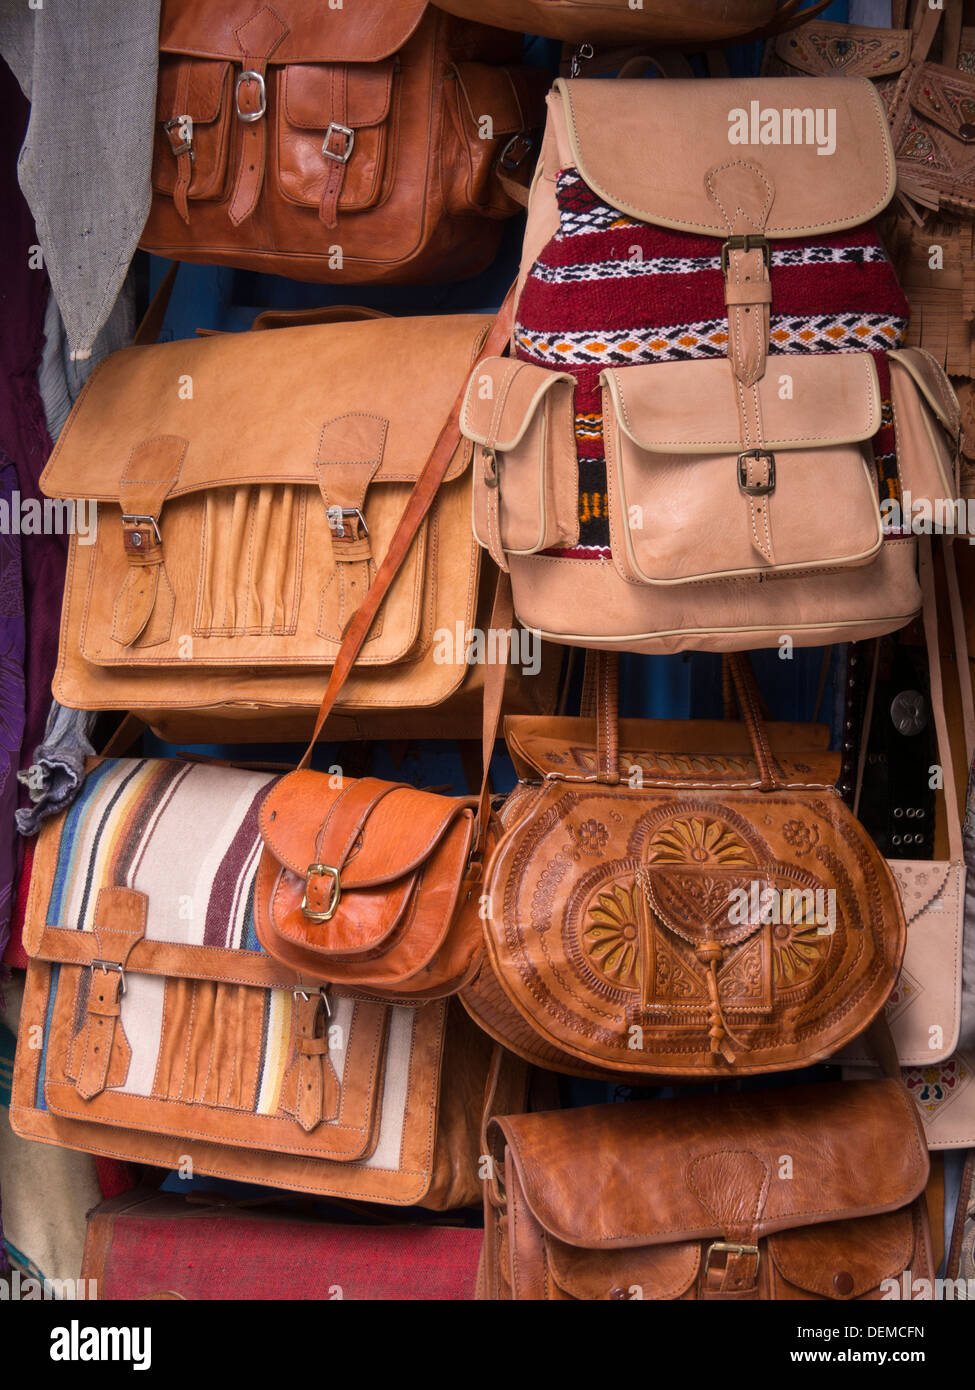 Leather bags, purses and backpacks for sale - Stock Image